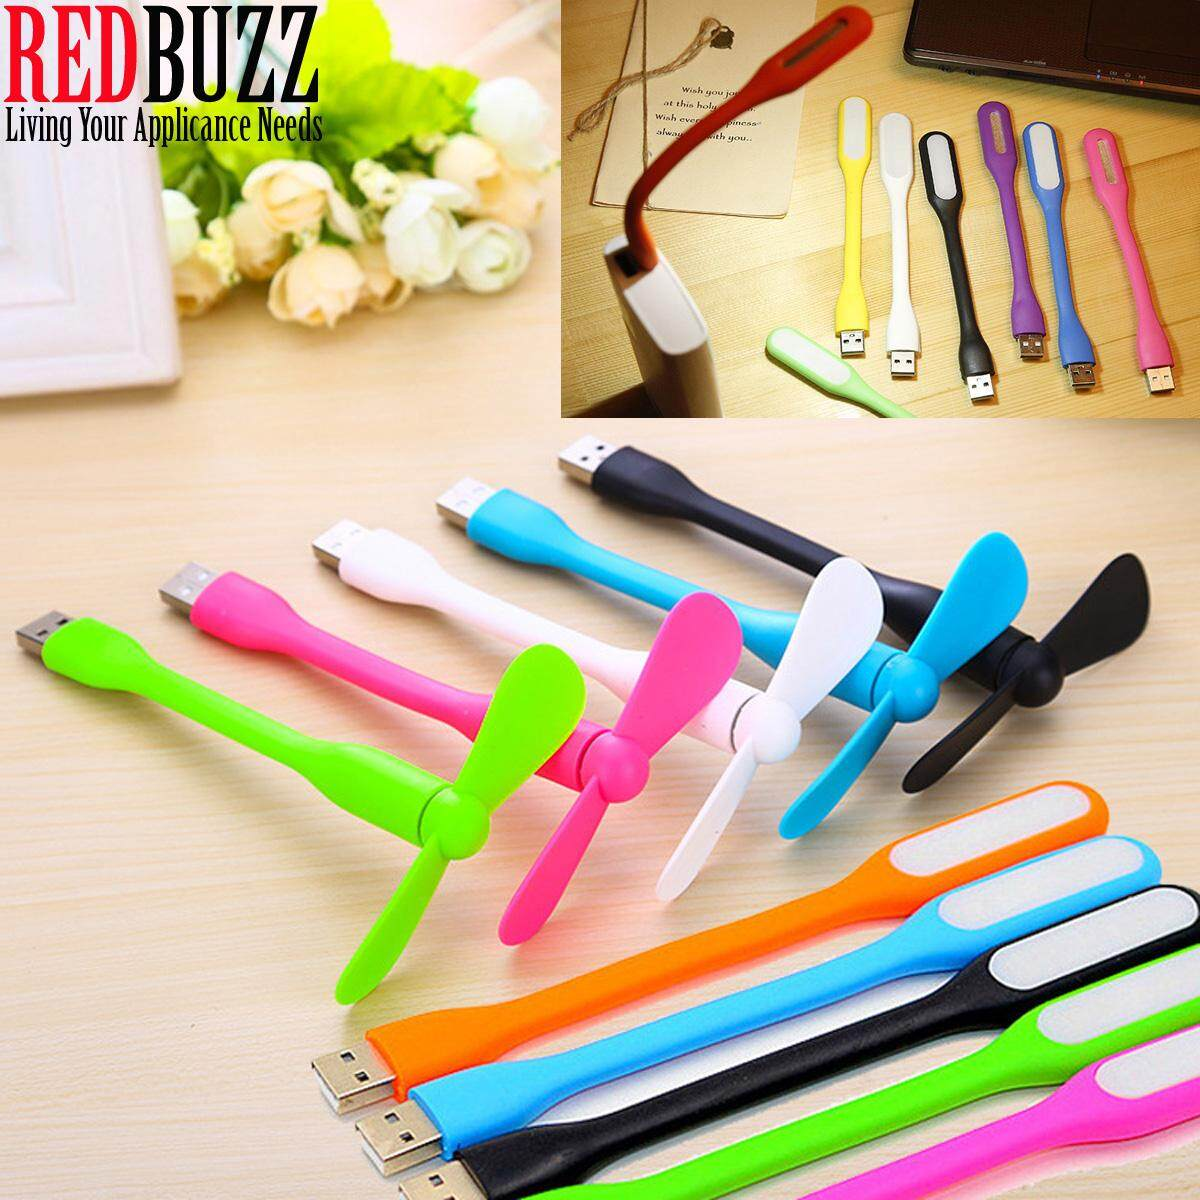 REDBUZZ USB Portable Mini Fan / USB Portable Mini LED Light Power Bank Fan and Light Small handheld Fan and LED Light